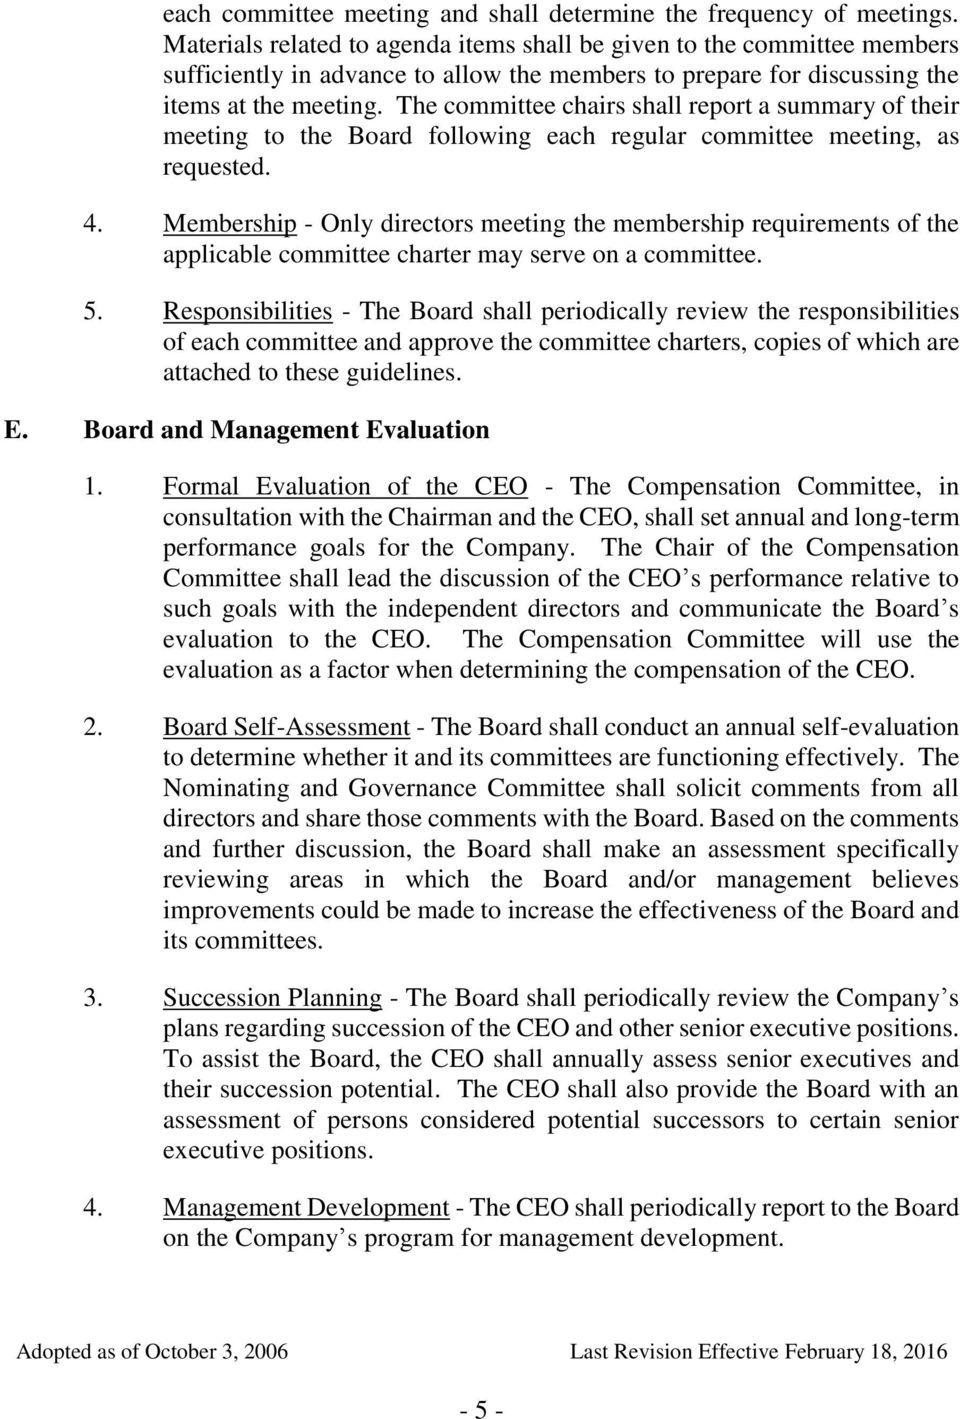 The committee chairs shall report a summary of their meeting to the Board following each regular committee meeting, as requested. 4.